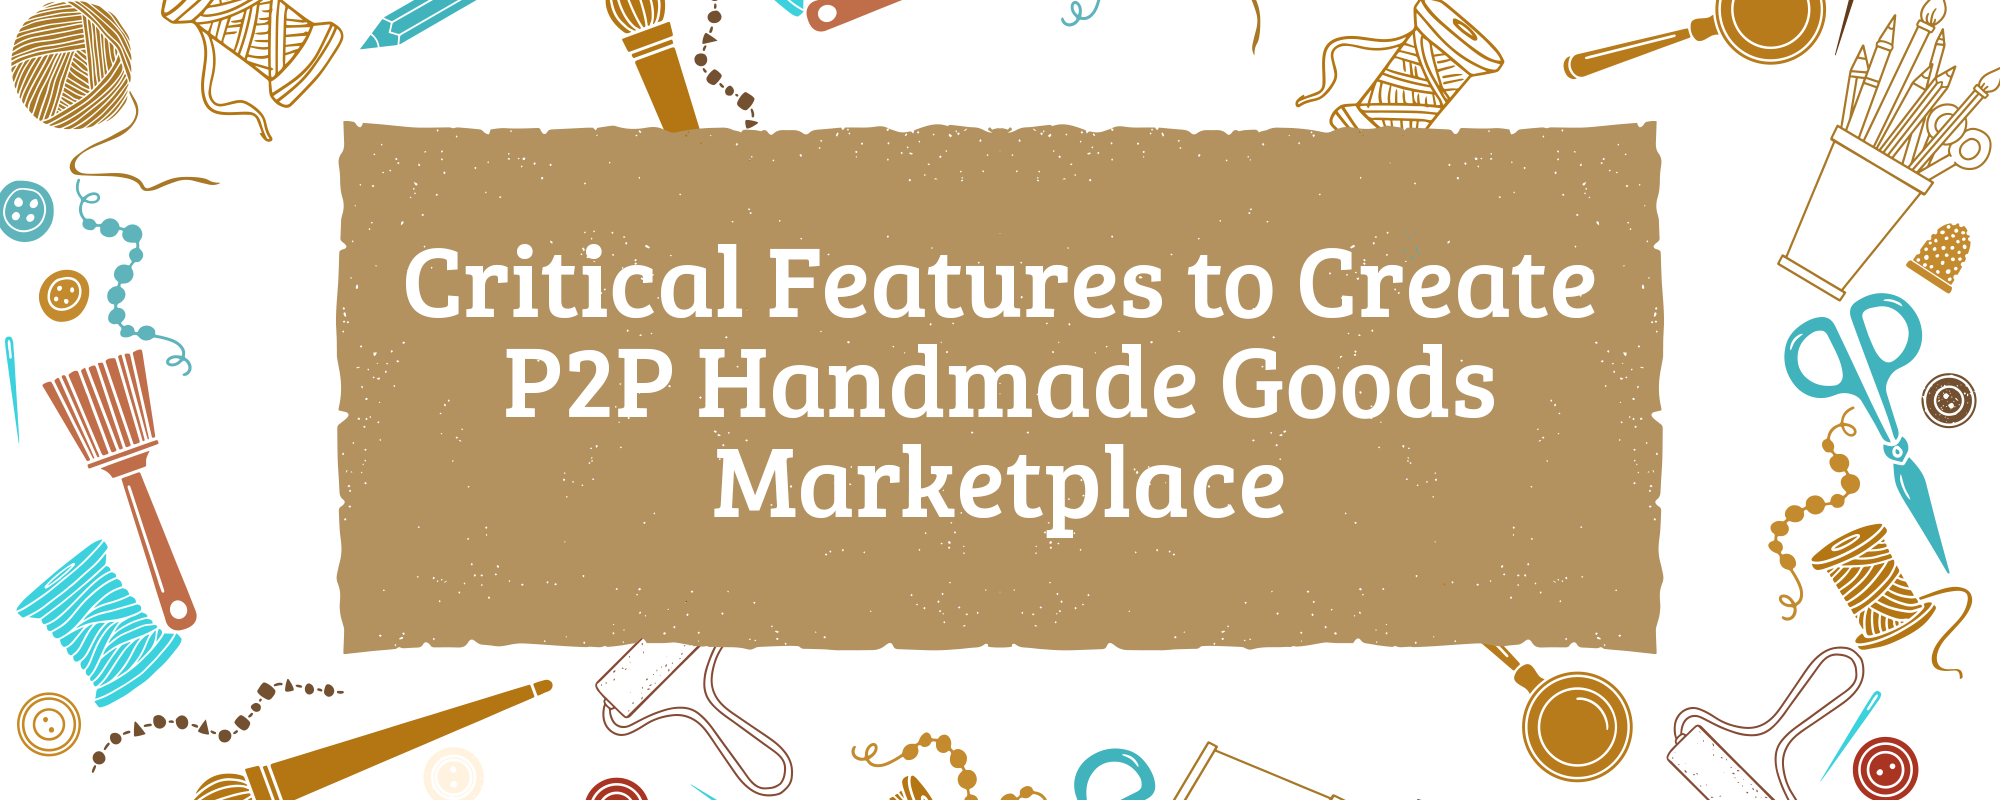 Clone Worthy Script Features to Create P2P Handmade and Unique Goods Marketplace